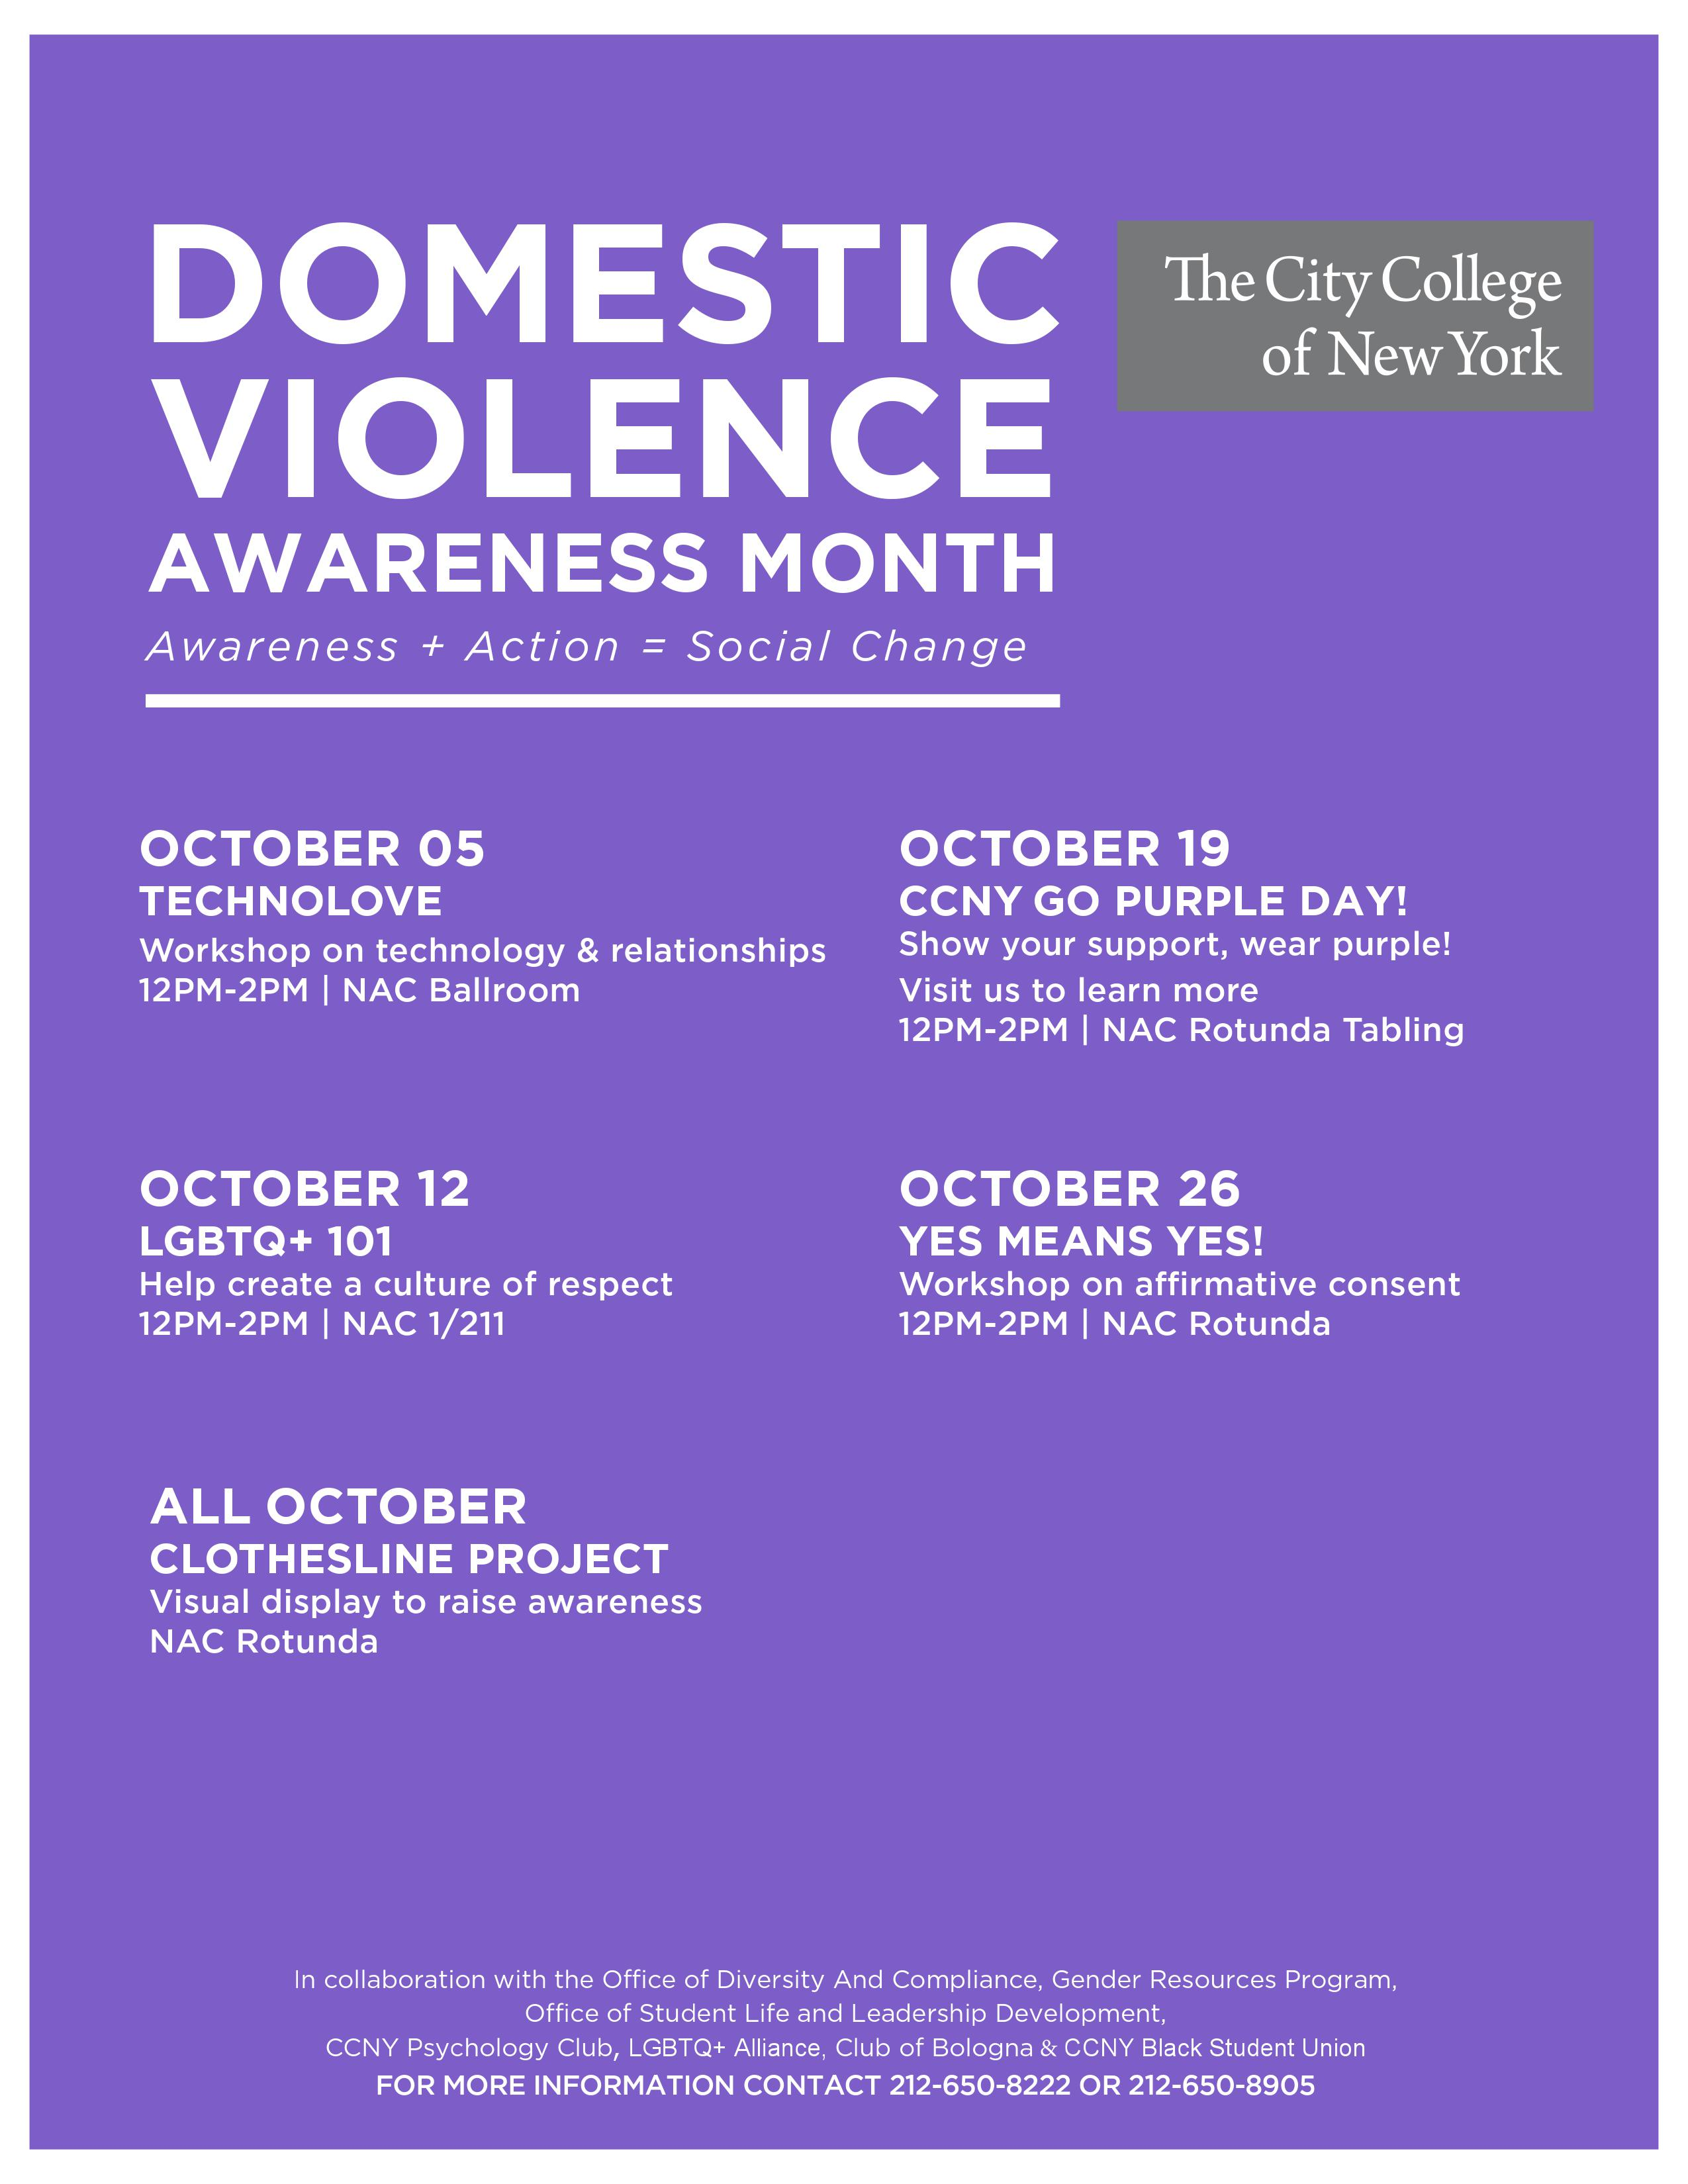 Domestic Violence Awareness Events